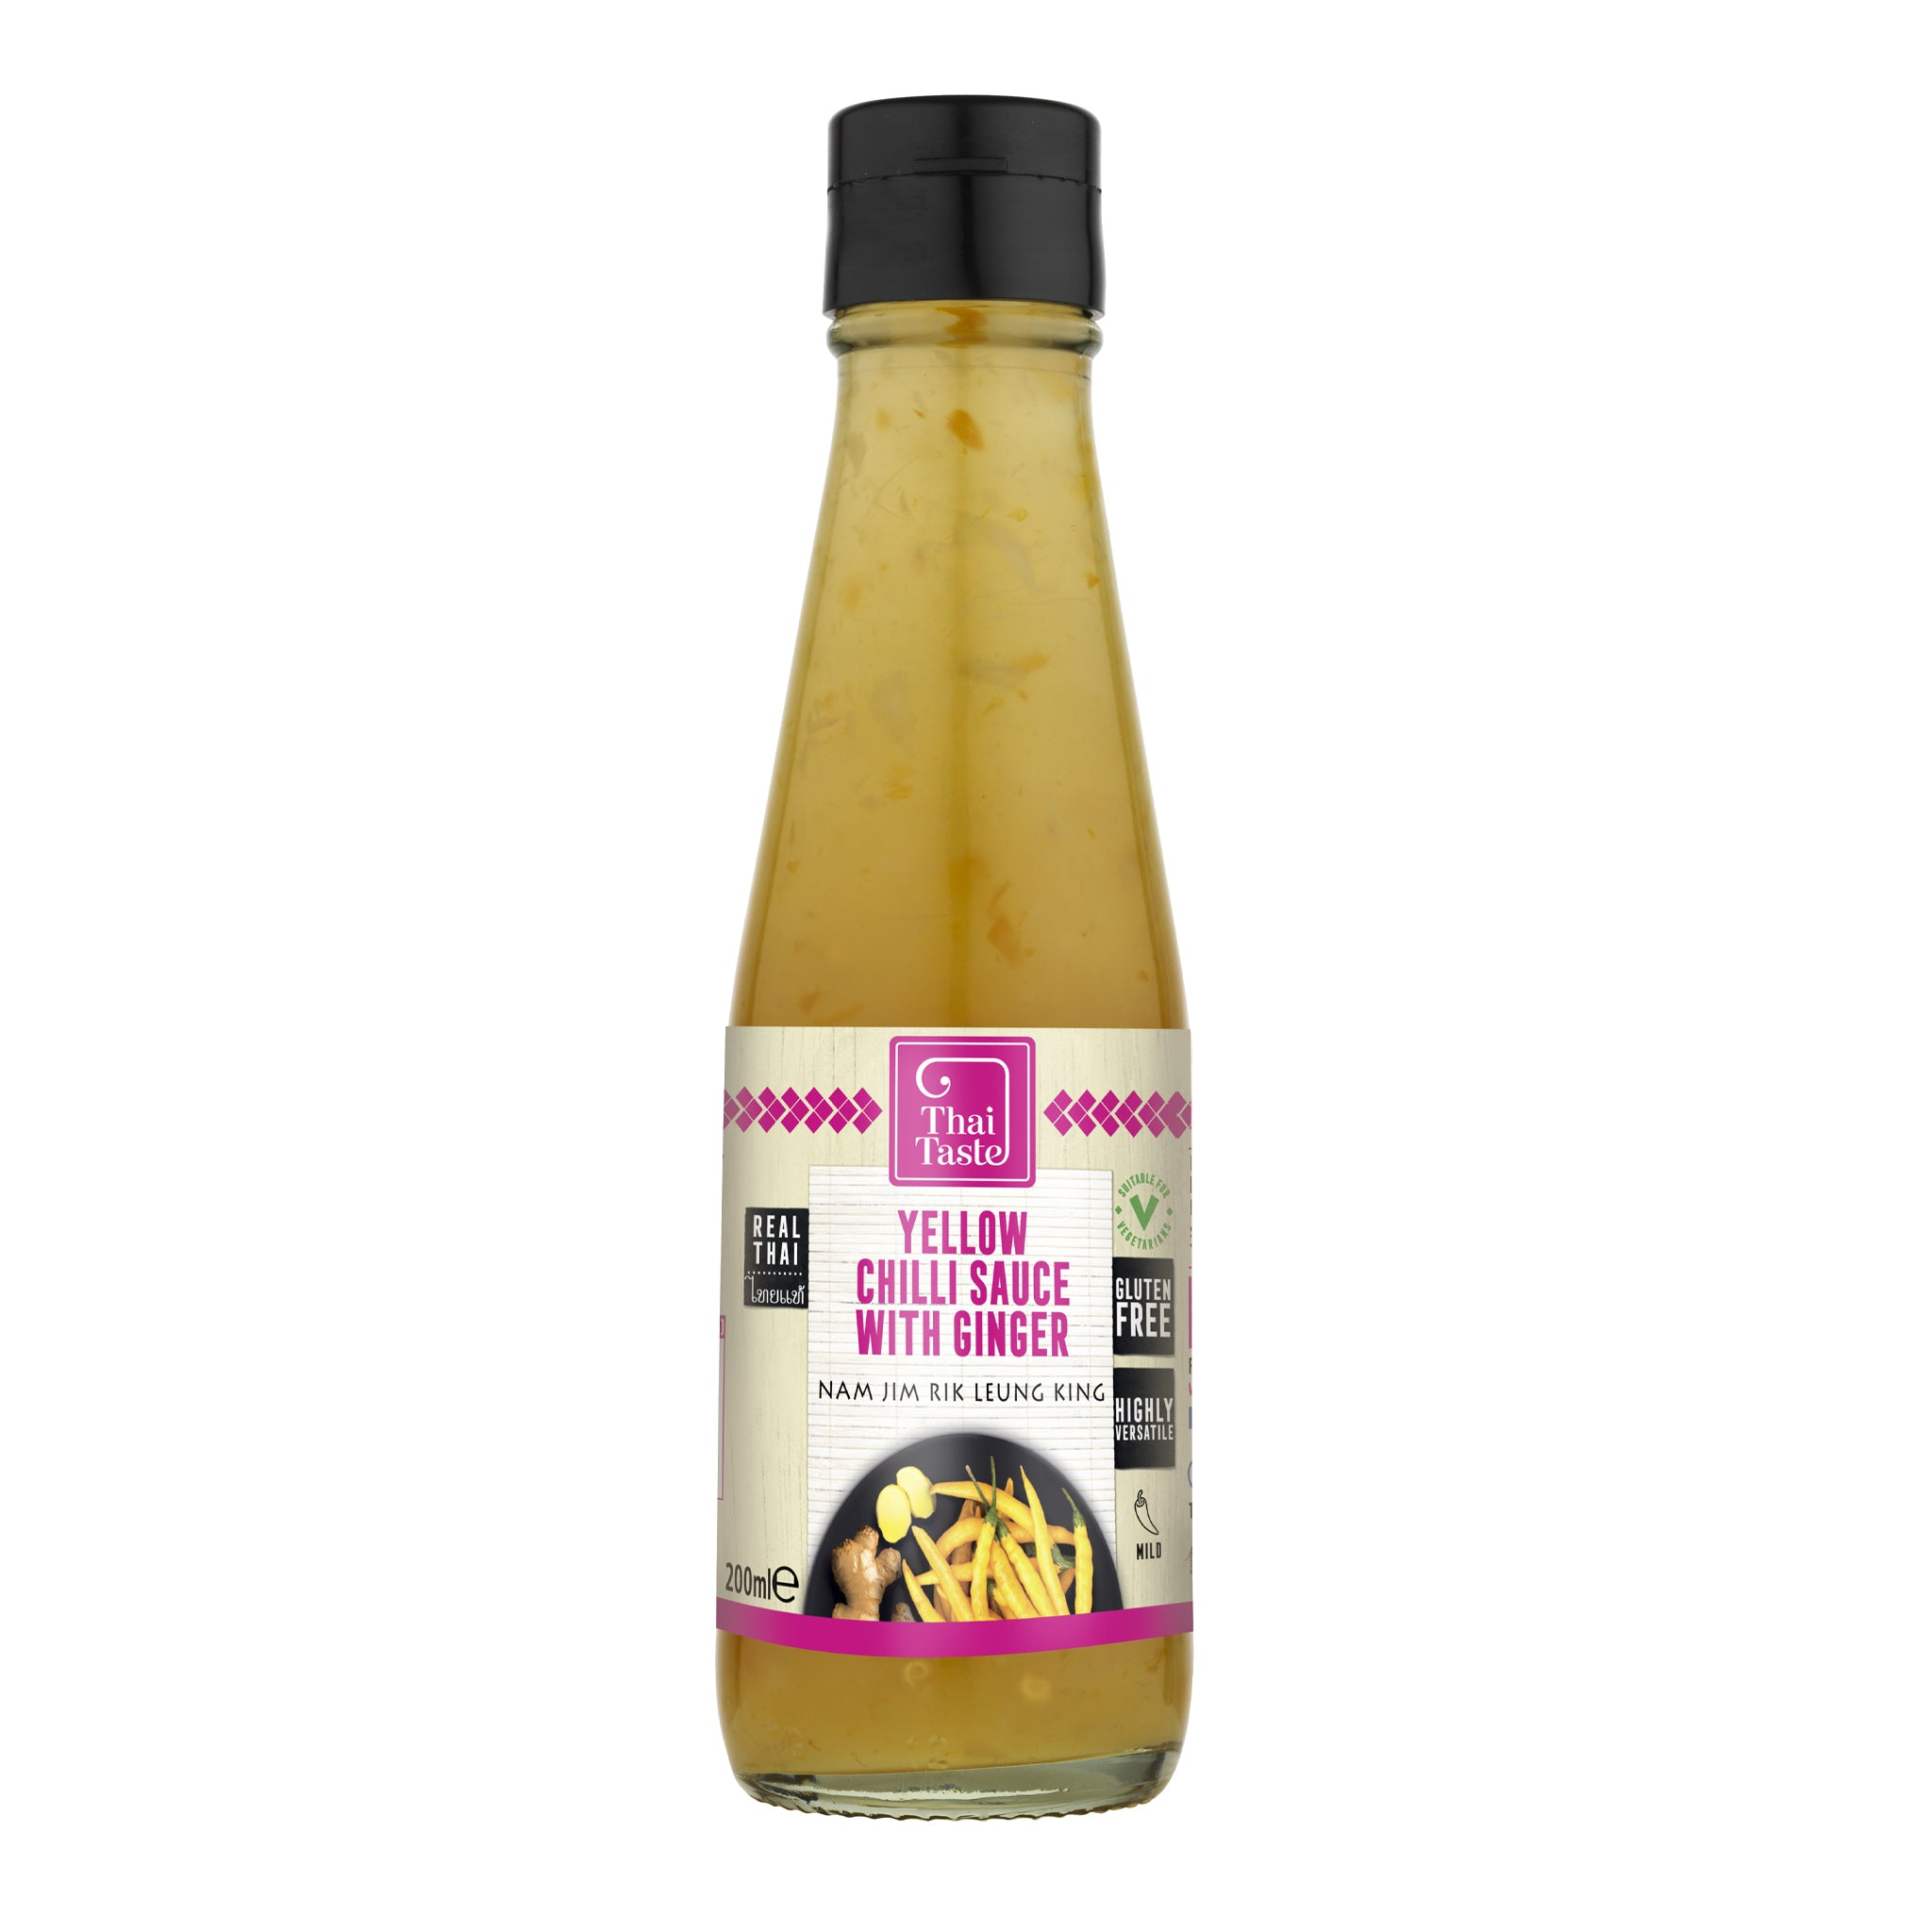 Yellow Chilli Sauce with Ginger (Nam Jim Rik Leung King) 200ml by Thai Taste